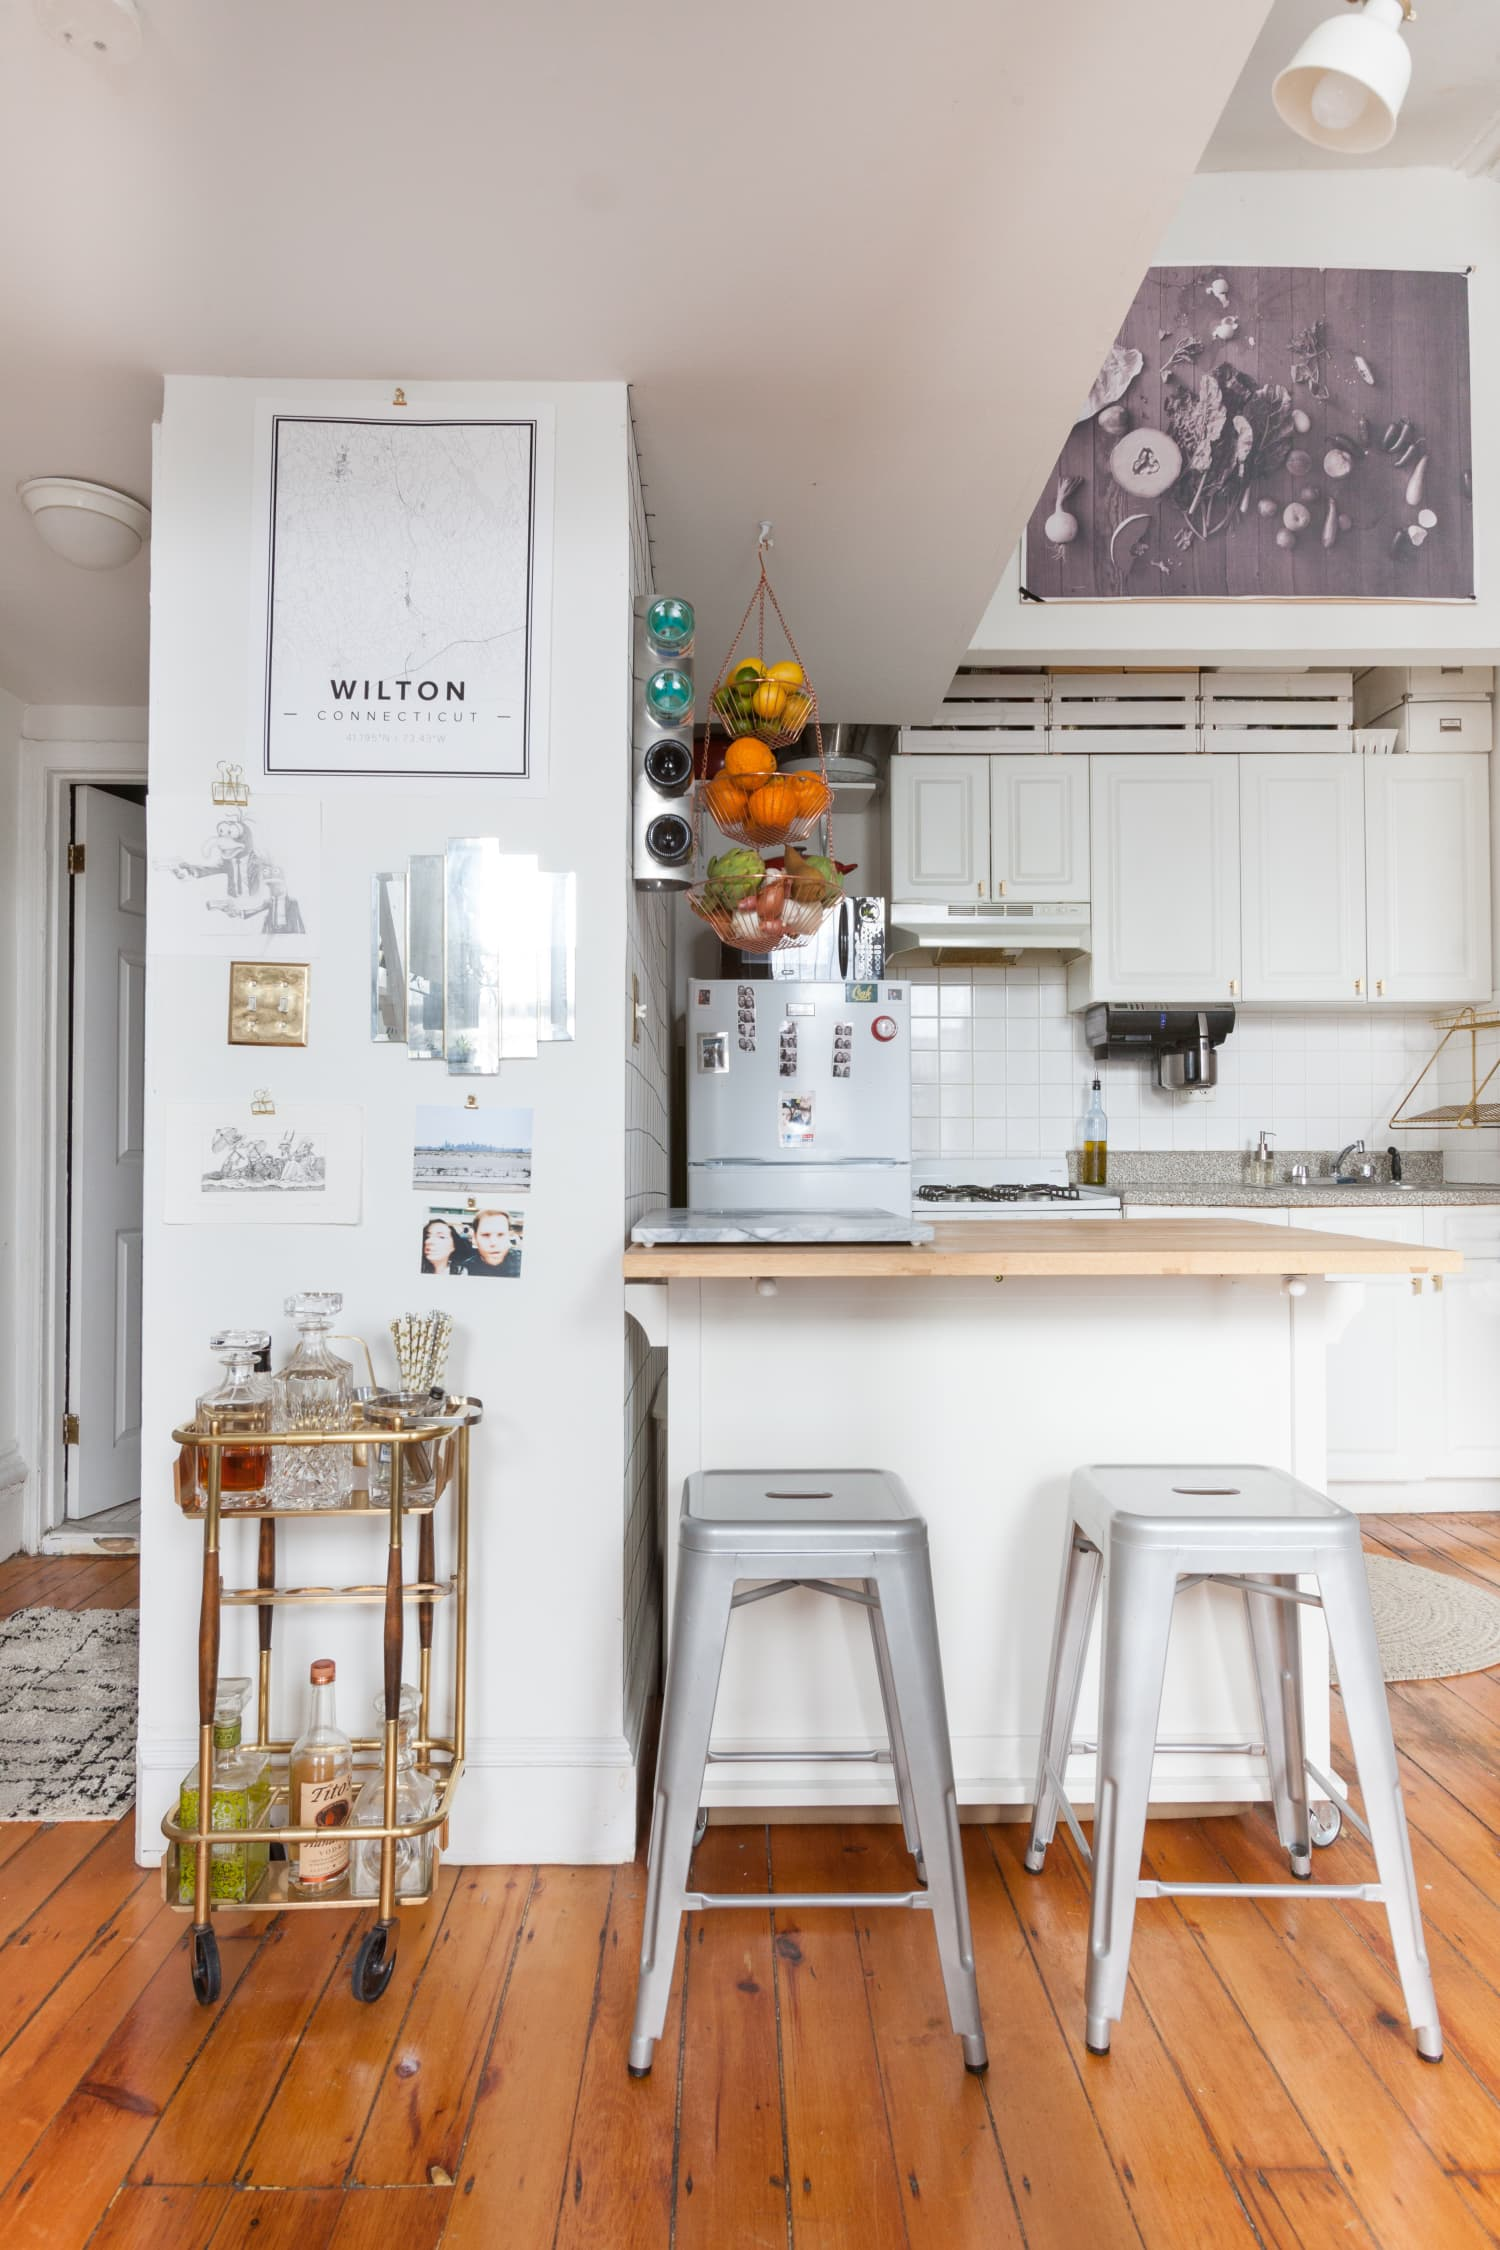 10 Brilliant Ways to Make Your Tiny Kitchen Look and Feel Much Bigger